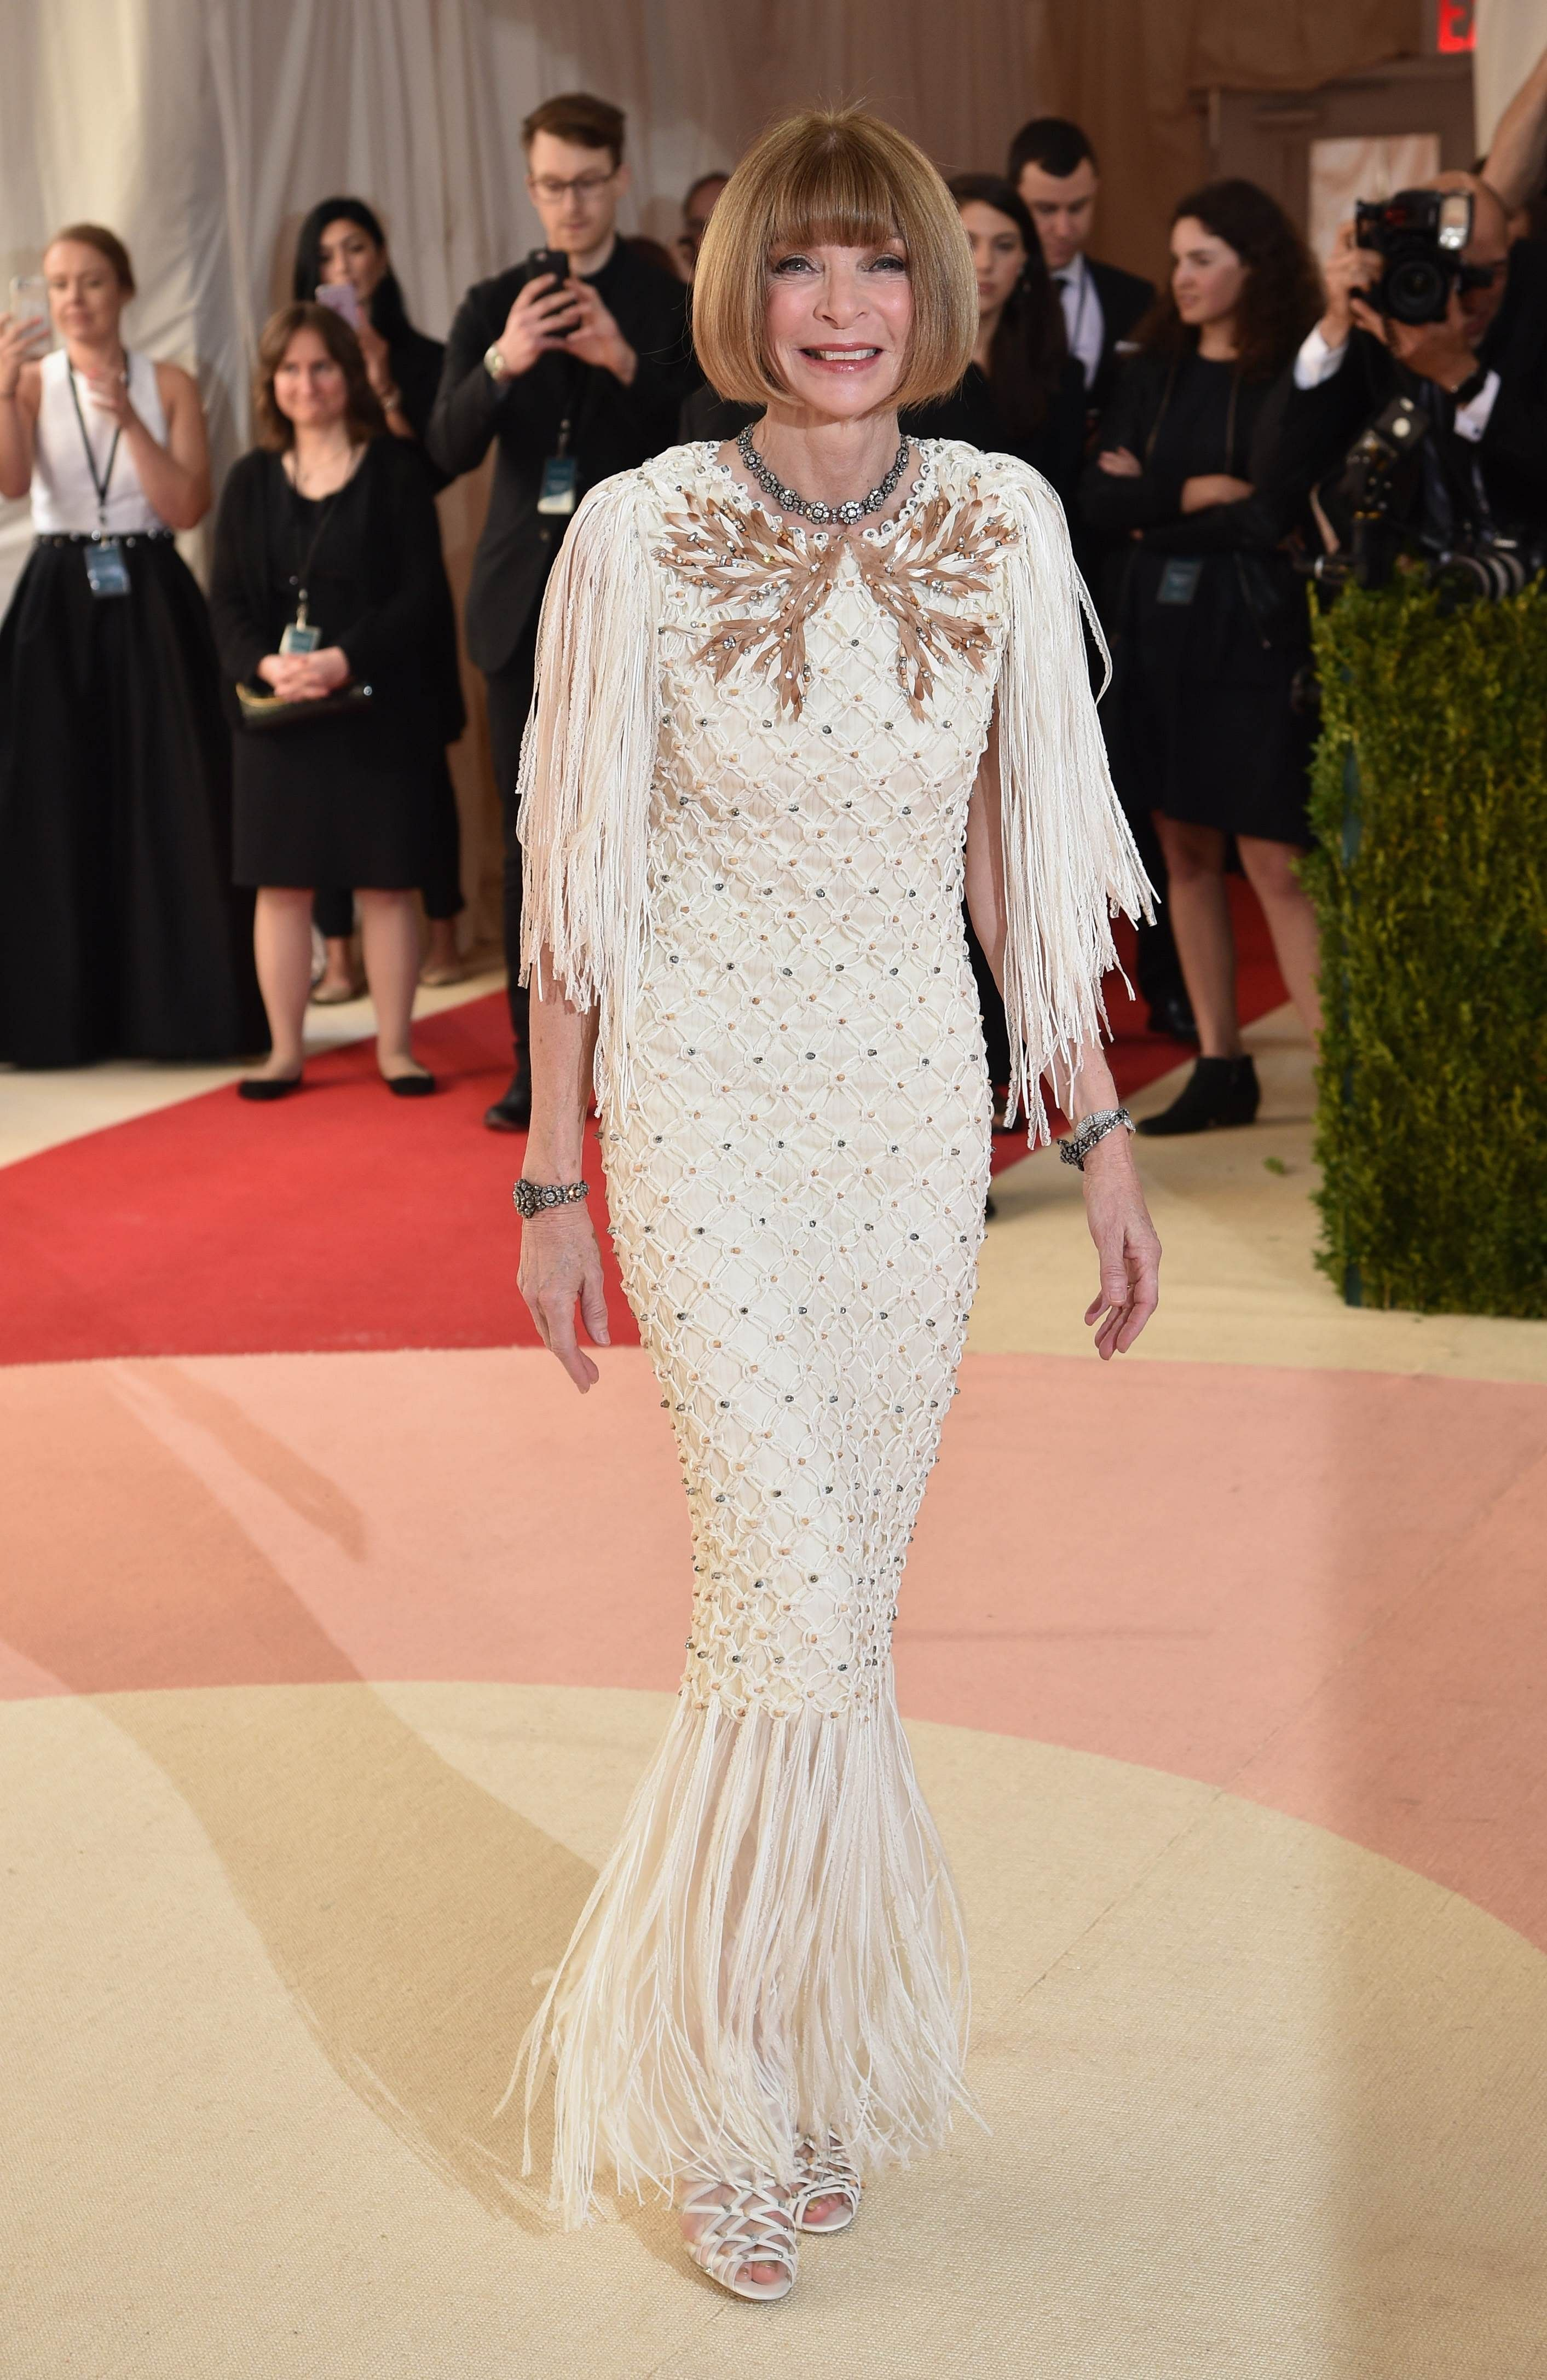 cd5af8f24fc Anna Wintour attending the Manus x Machina: Fashion In An Age Of Technology  Costume Institute Gala at Metropolitan Museum of Art on May 2, 2016, ...